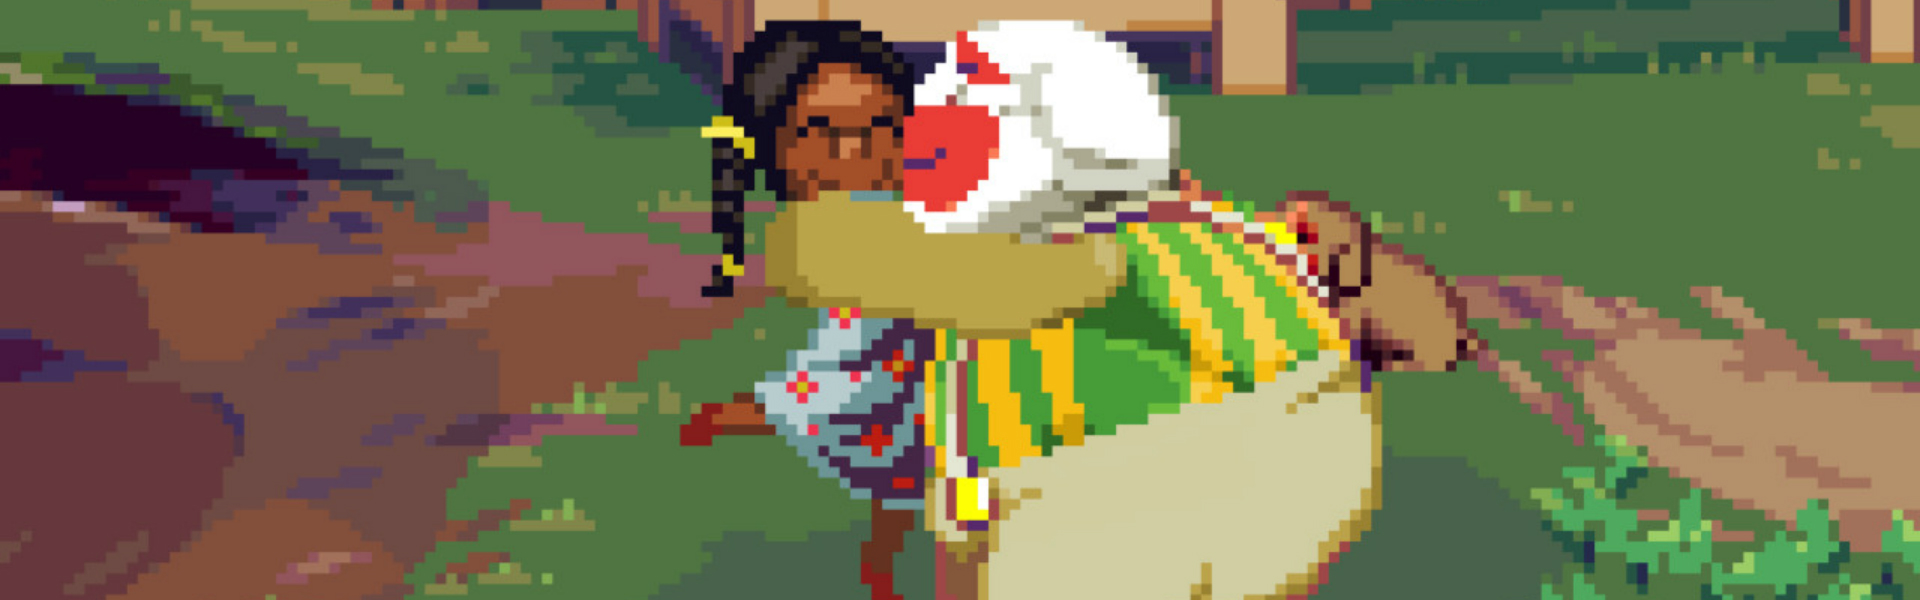 dropsy-featured.jpg